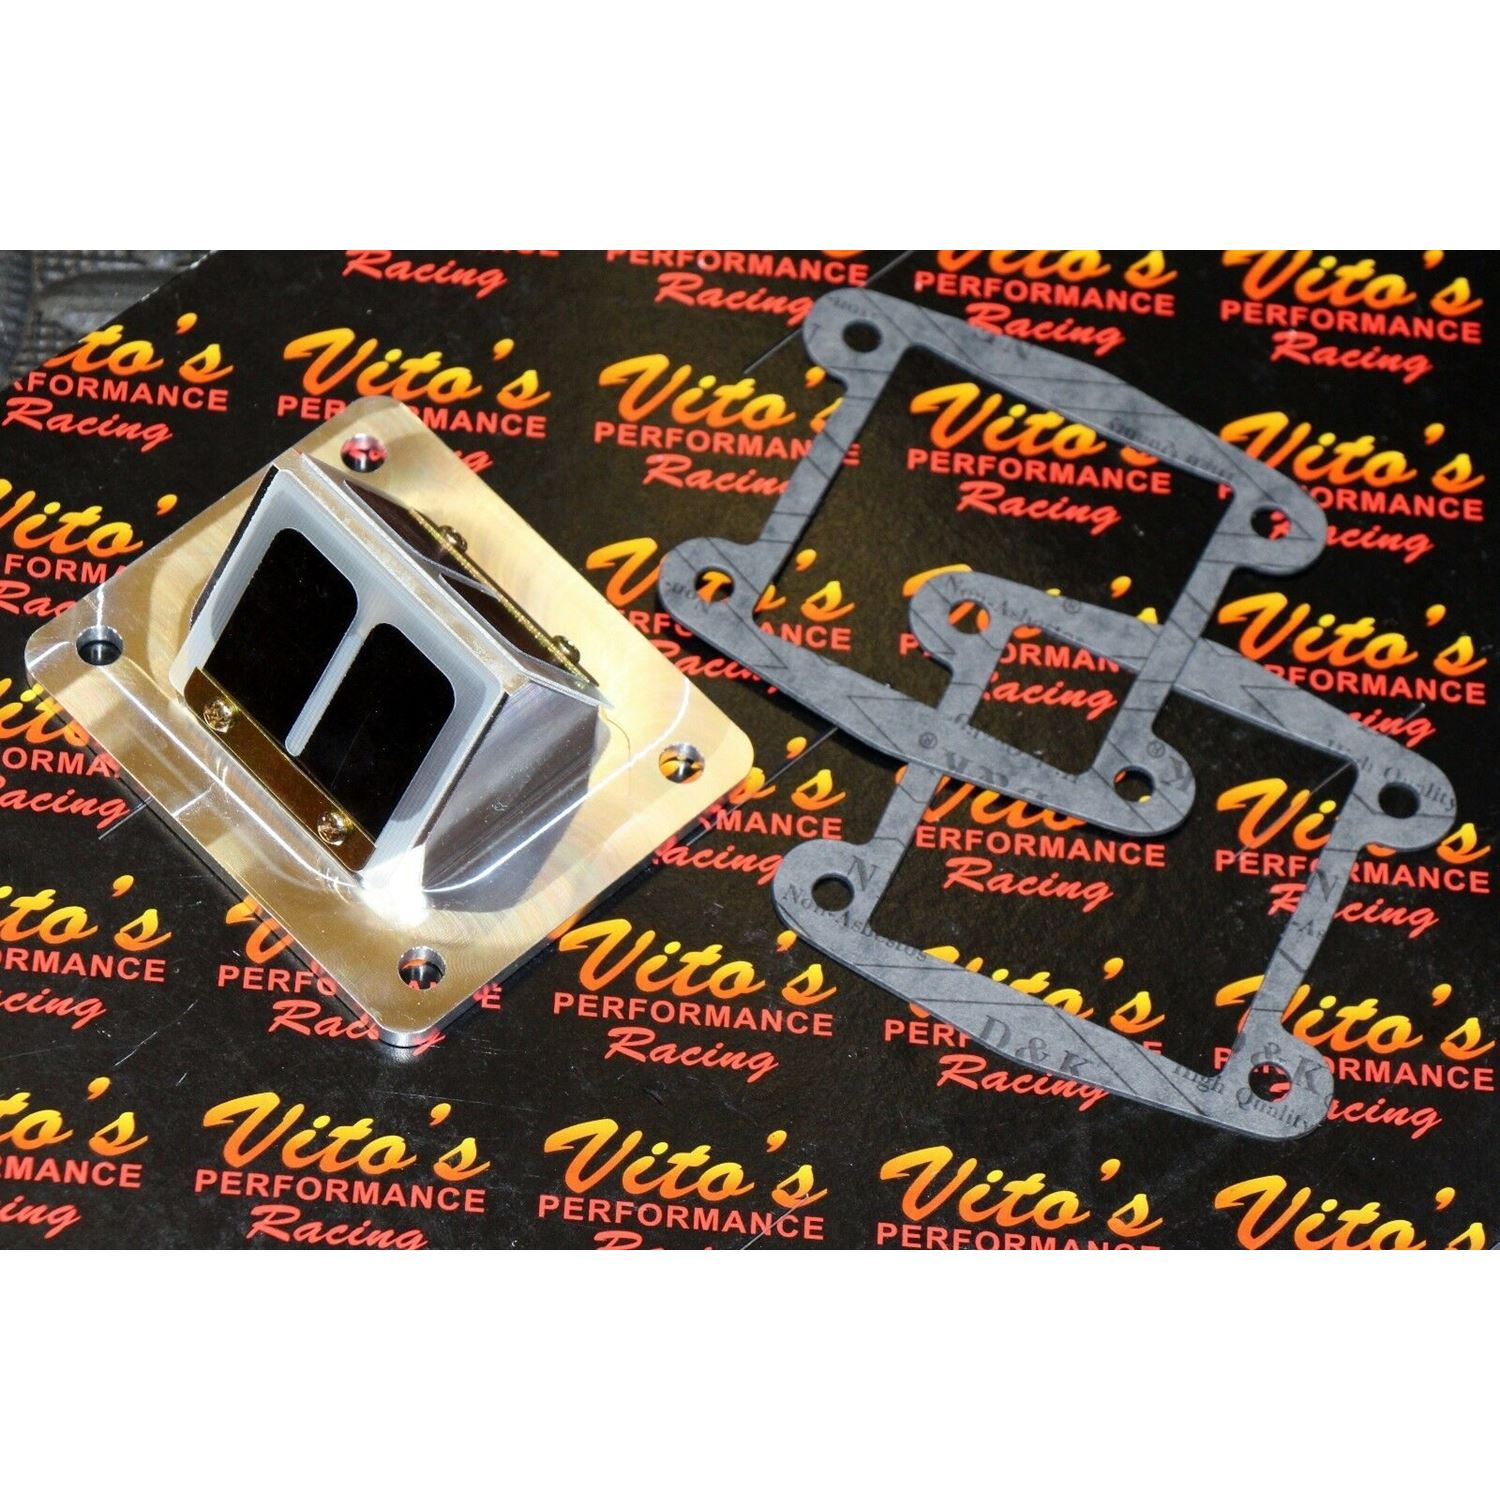 Vito's Performance billet BULLSEYE REED CAGES